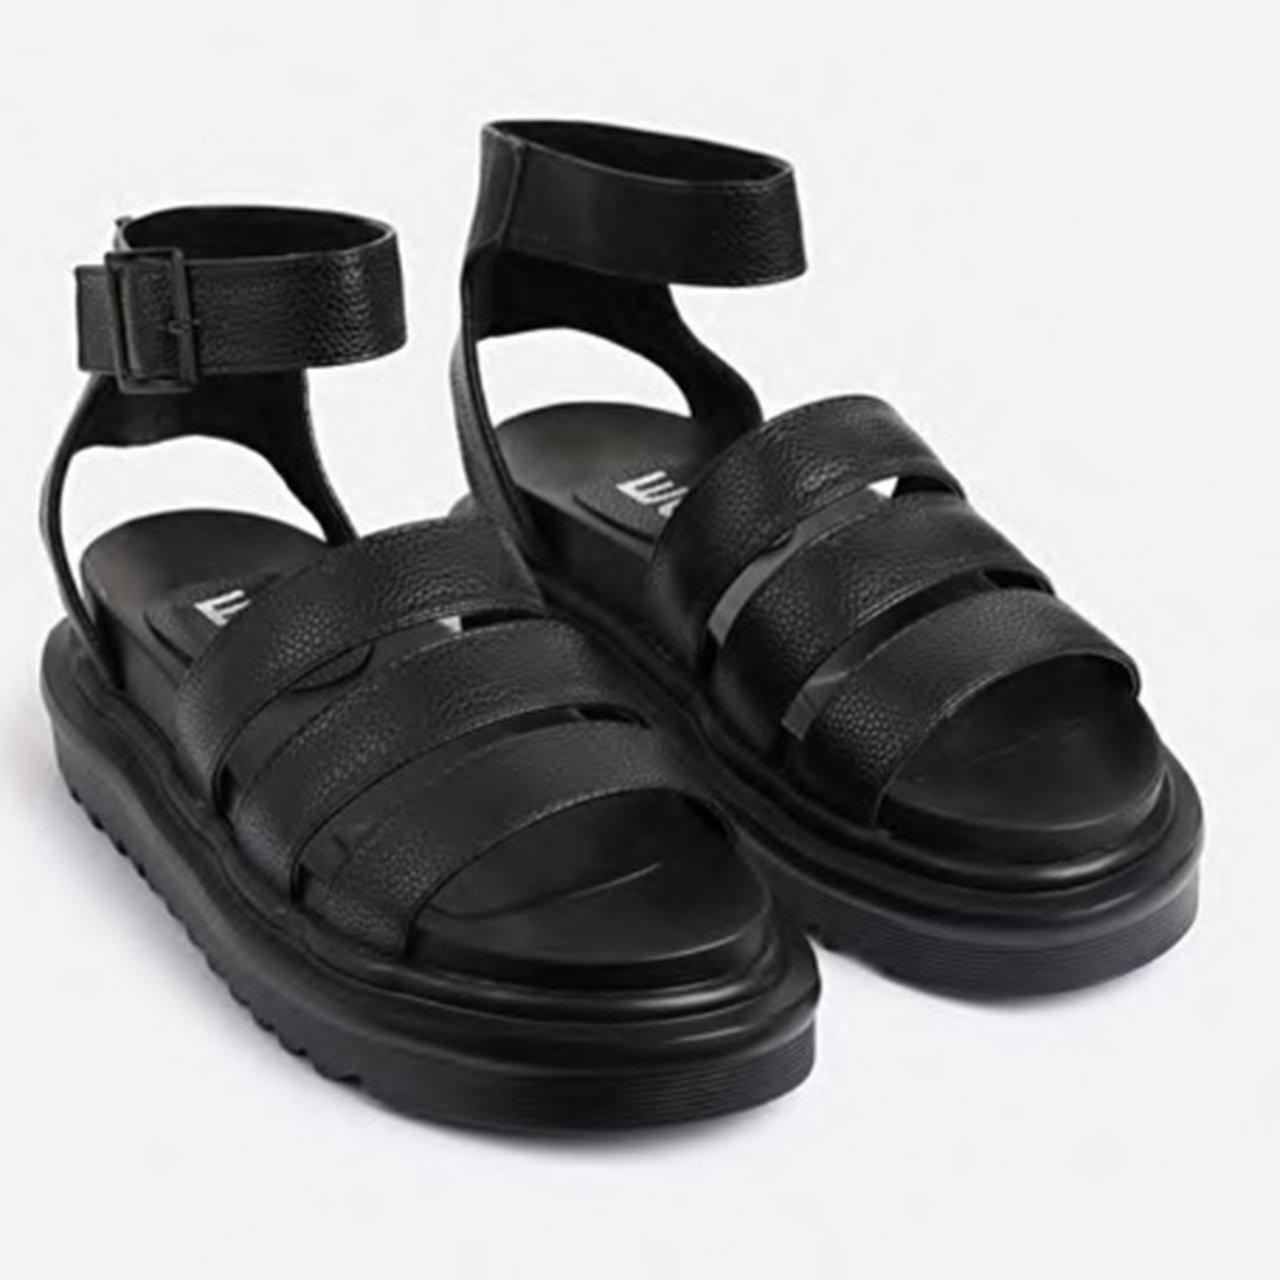 Clueless chunky sole sandals in black